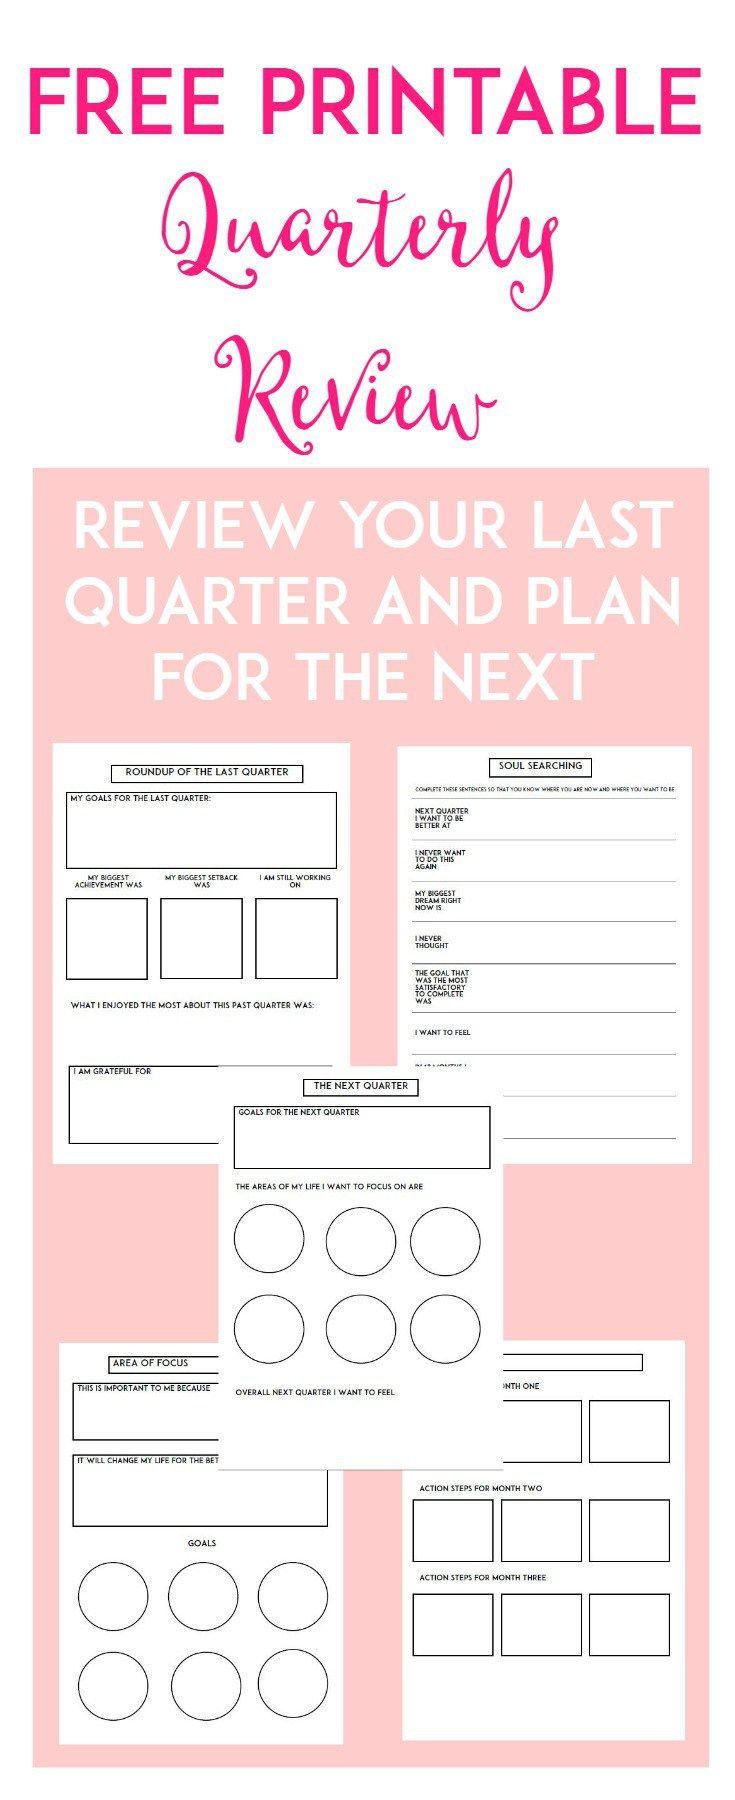 Free Printable Quarterly Review Worksheets from Acorns and Lemonade.com {newsletter subscription required}